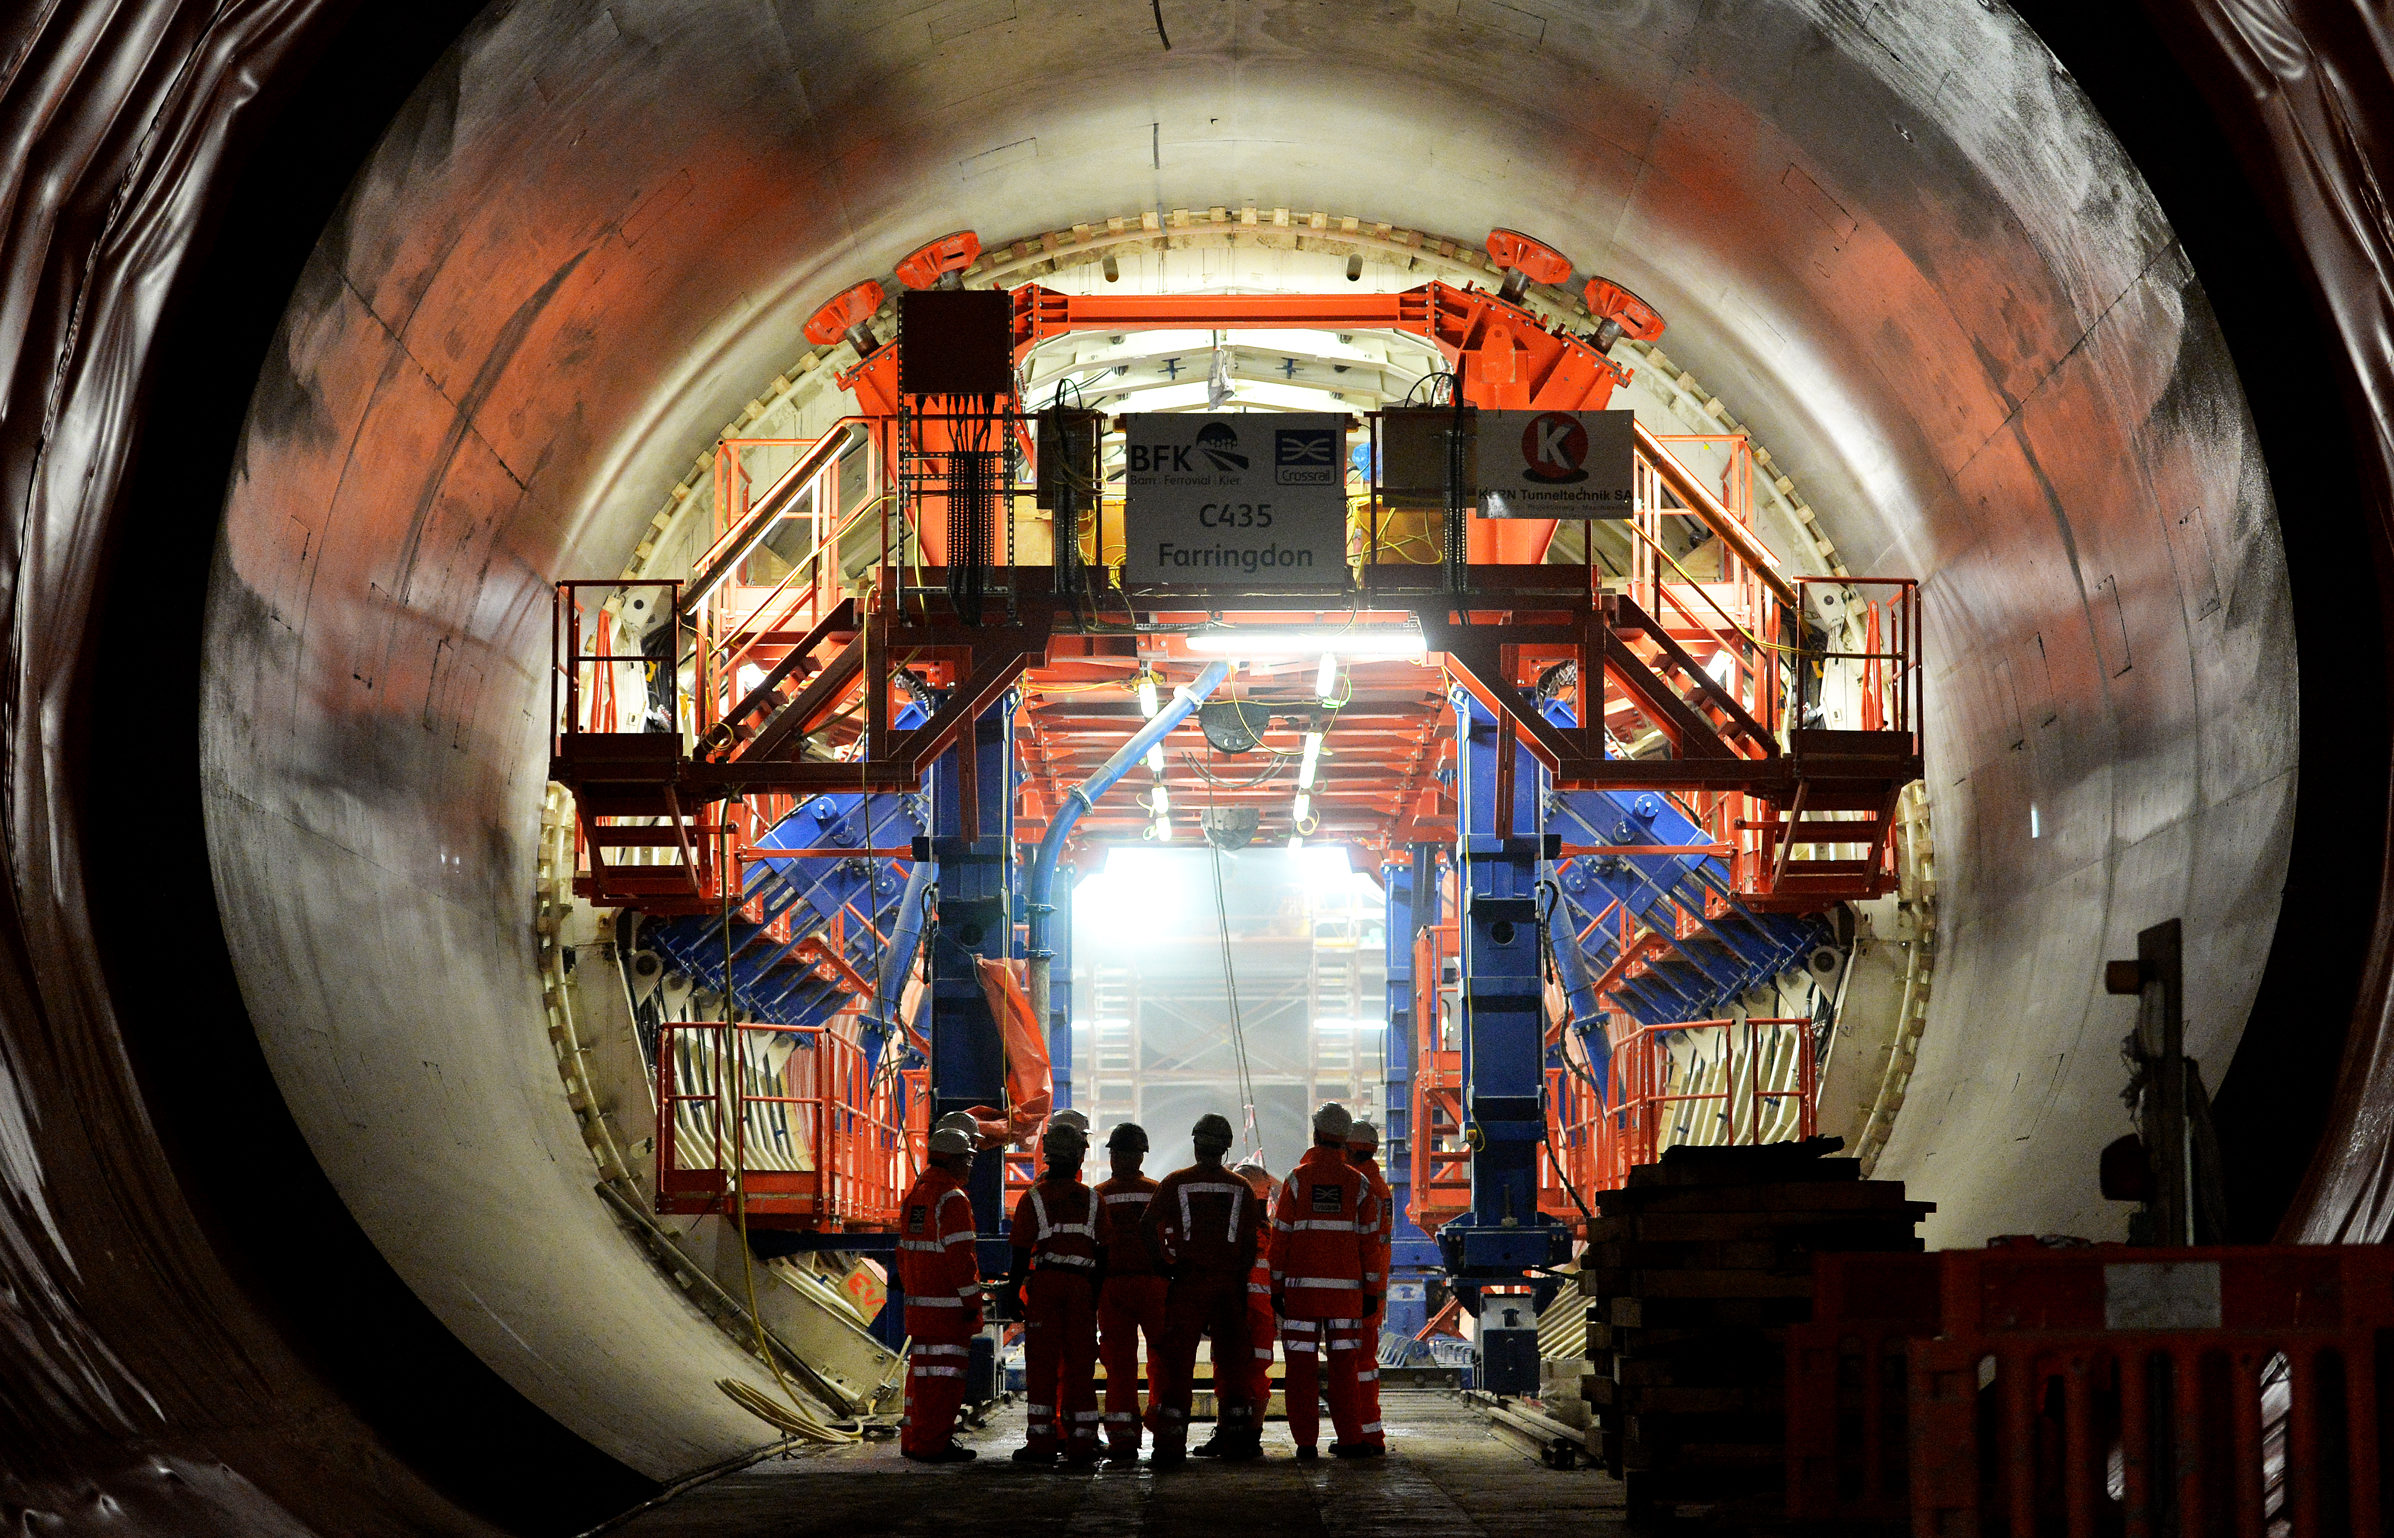 George Osborne is right to back Crossrail 2 – but London should pay for it